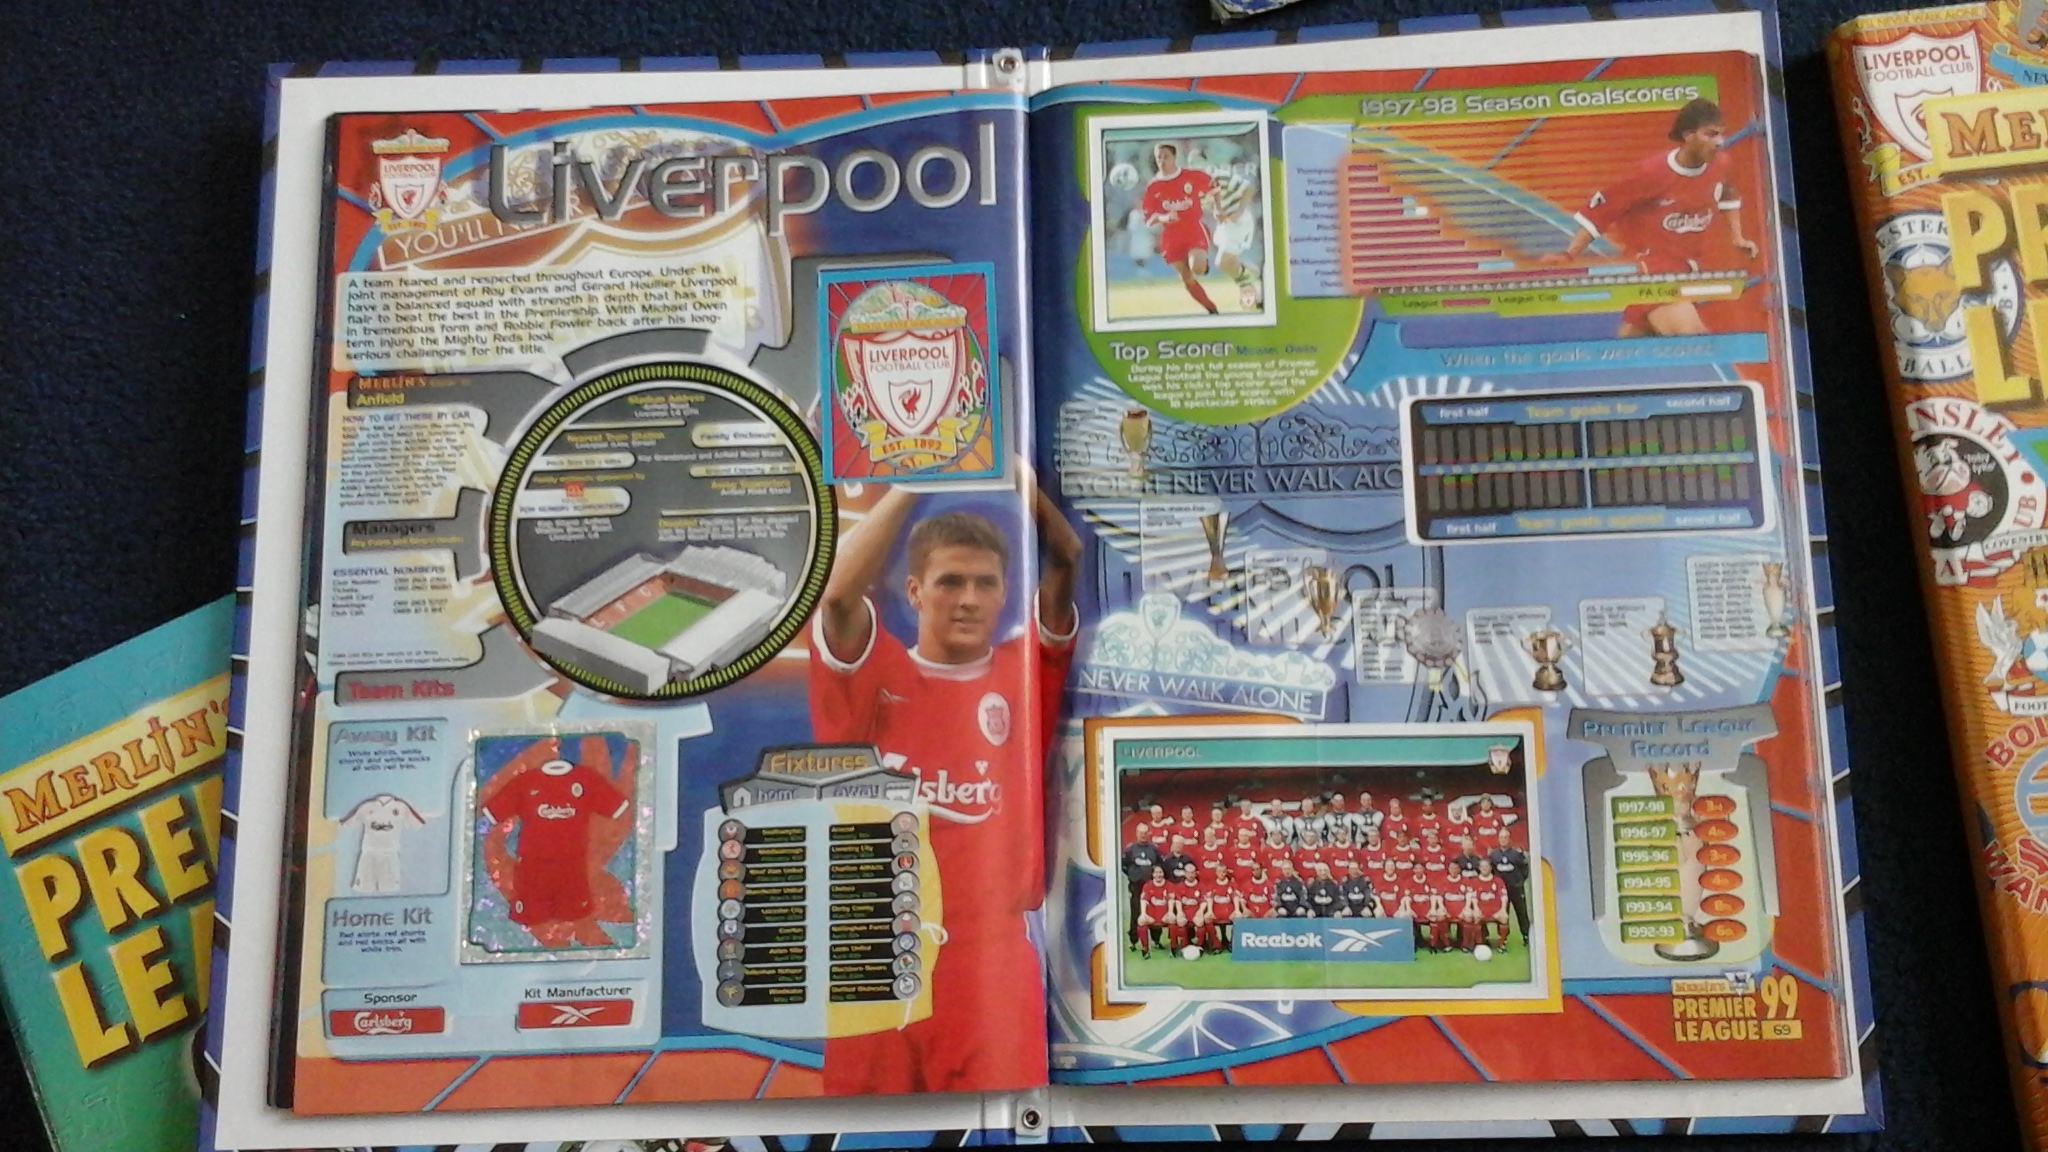 A Liverpool page in a 1990s Premier League sticker album